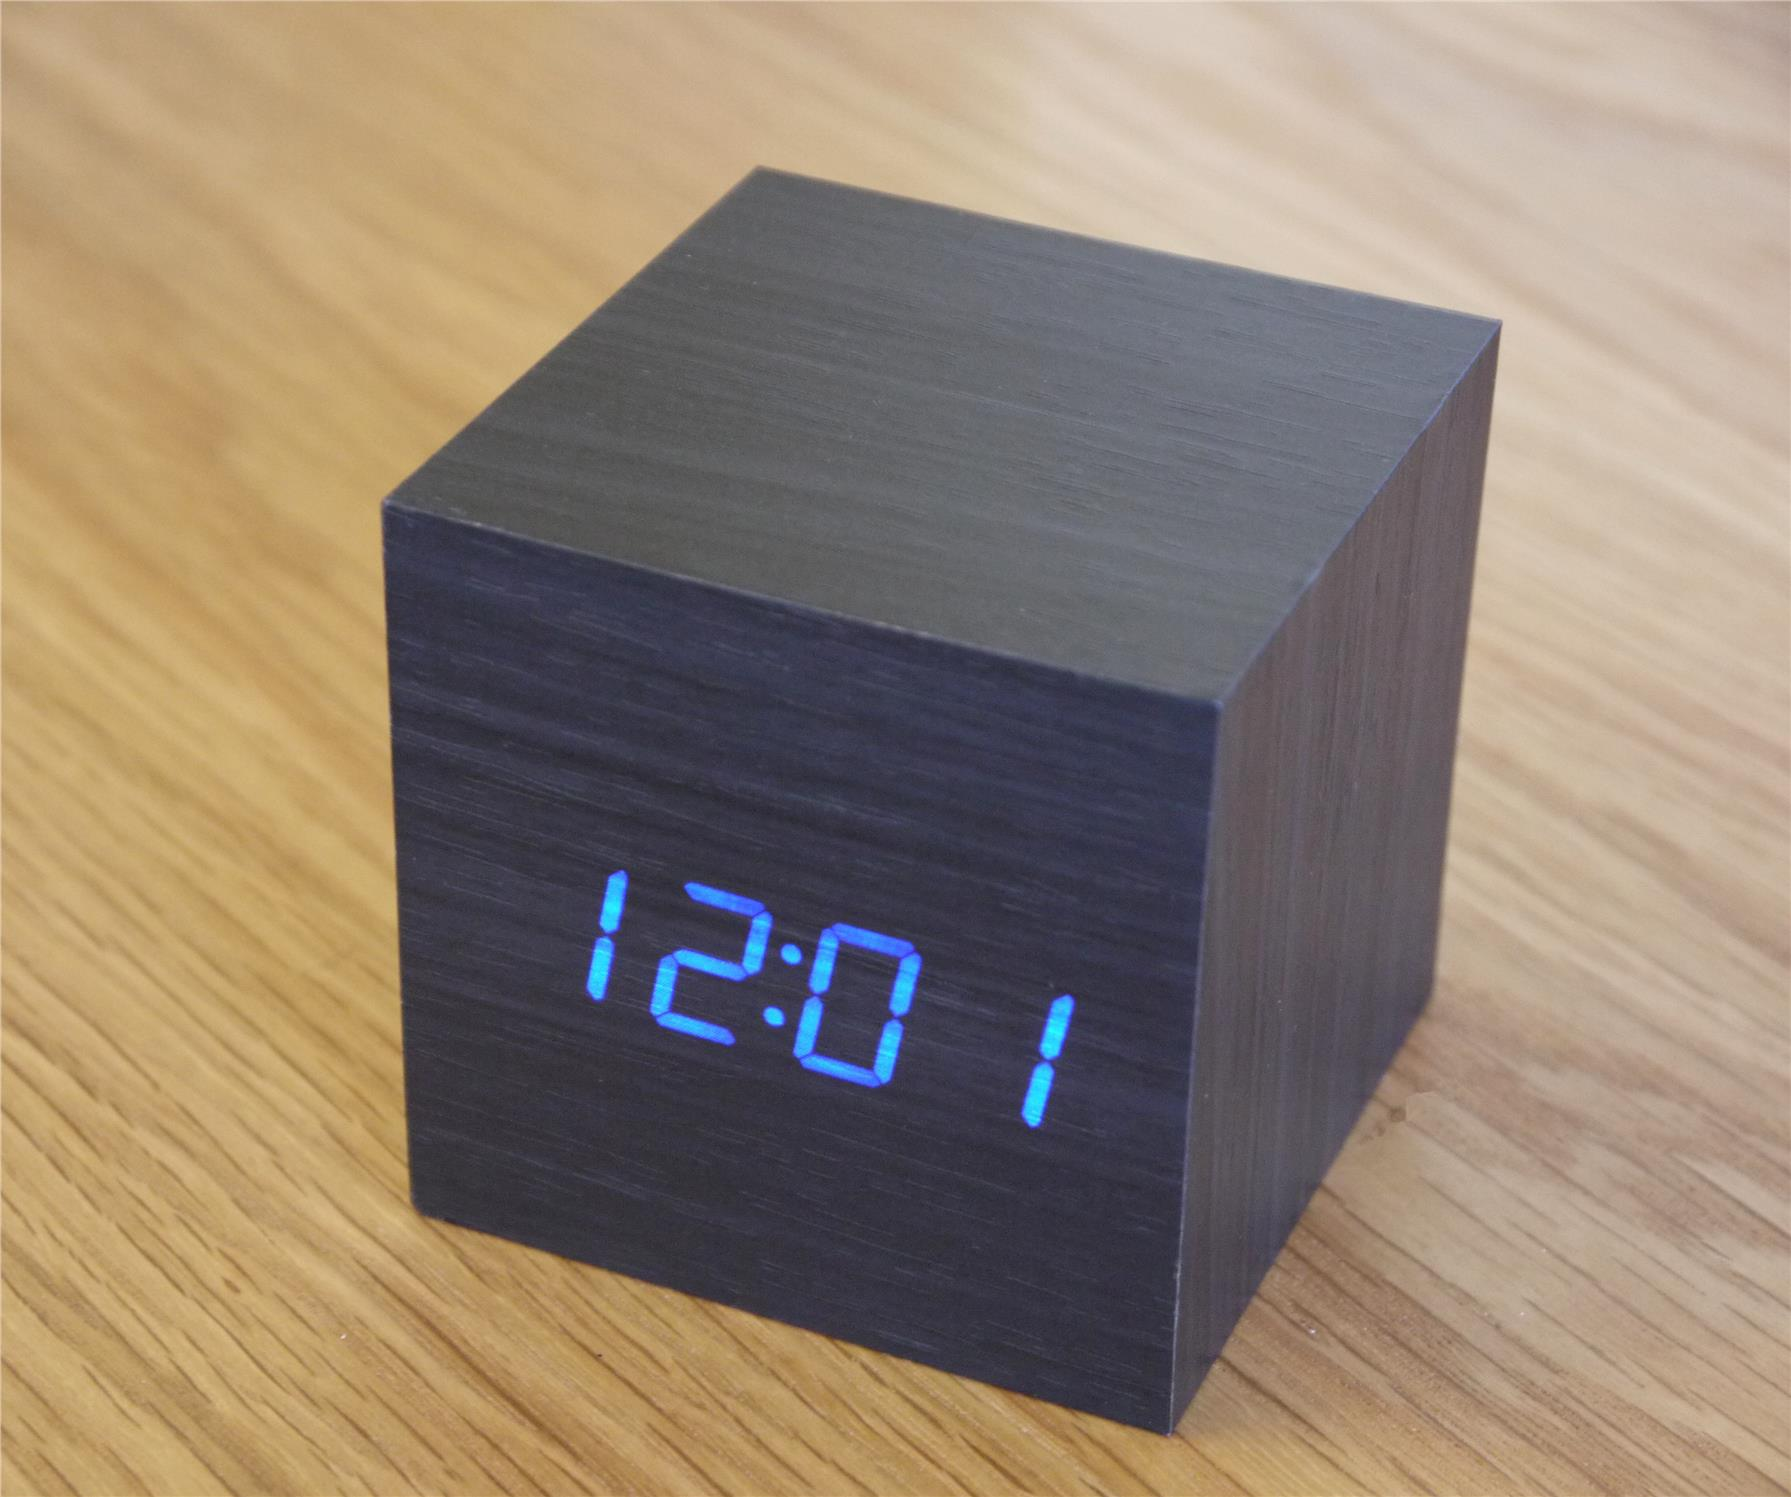 Small Led Alarm Clock Airgear Mini Wooden Cube Led Alarm C End 7 28 2018 3 15 Pm